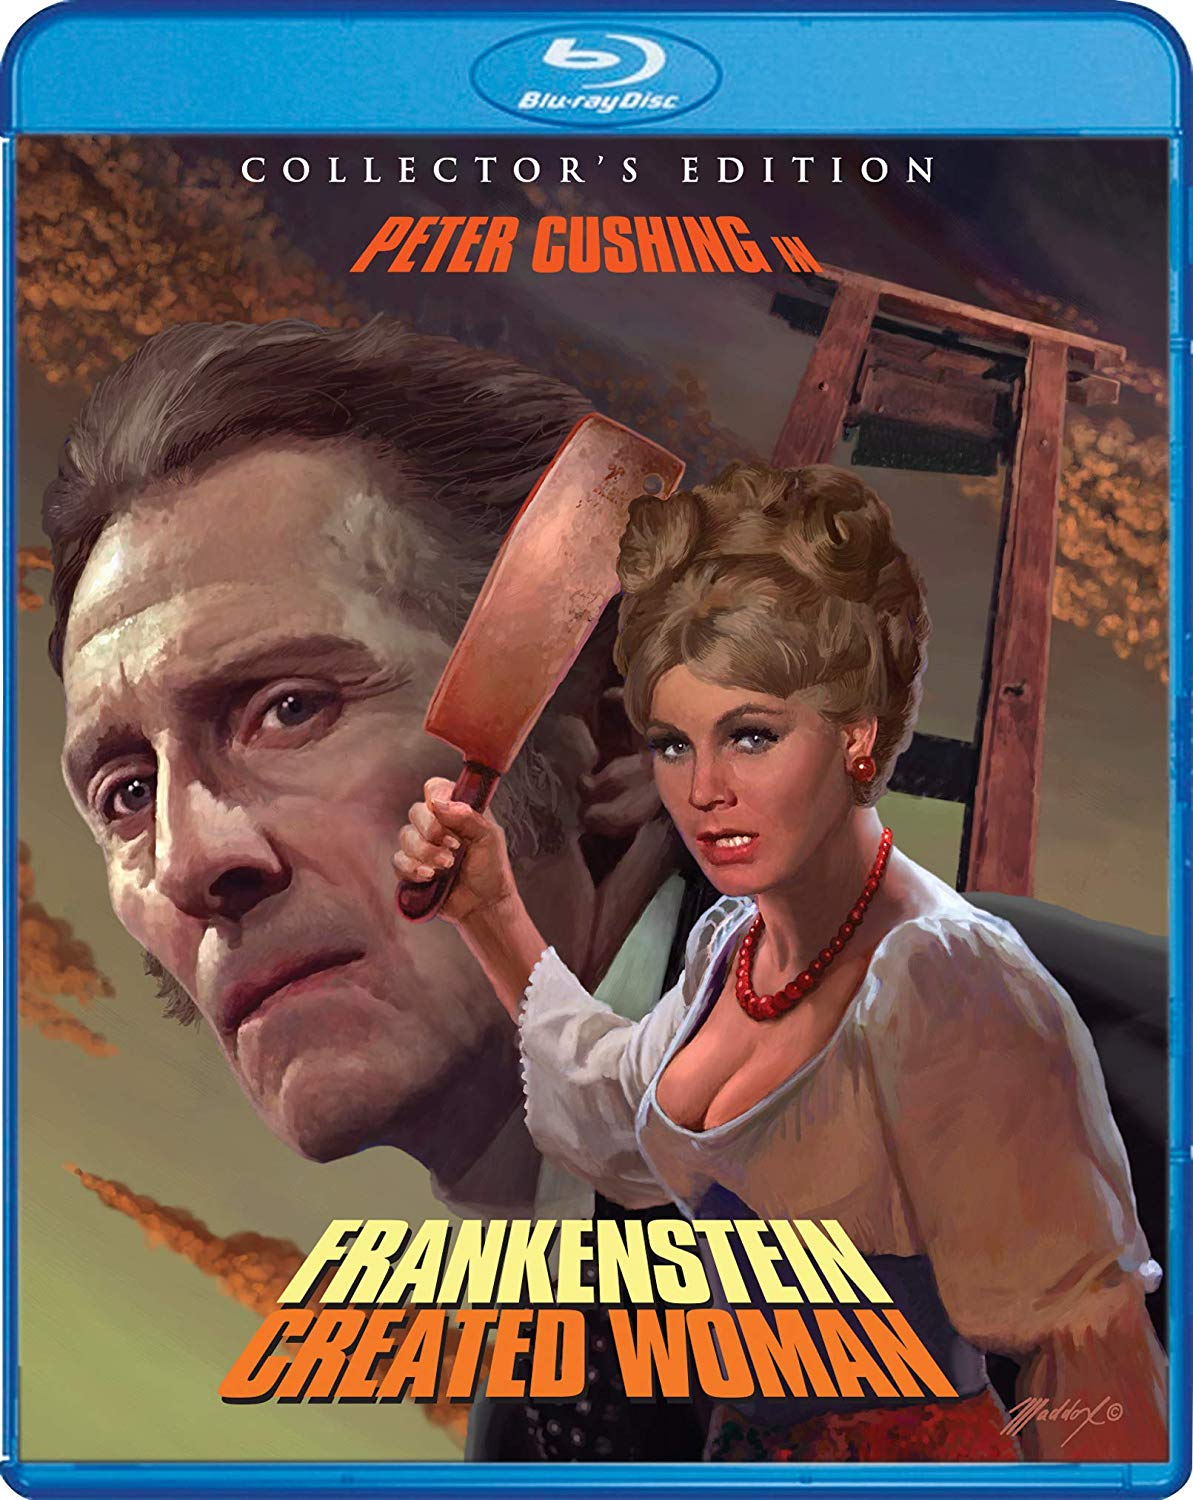 Frankenstein Created Woman: Collector's Edition